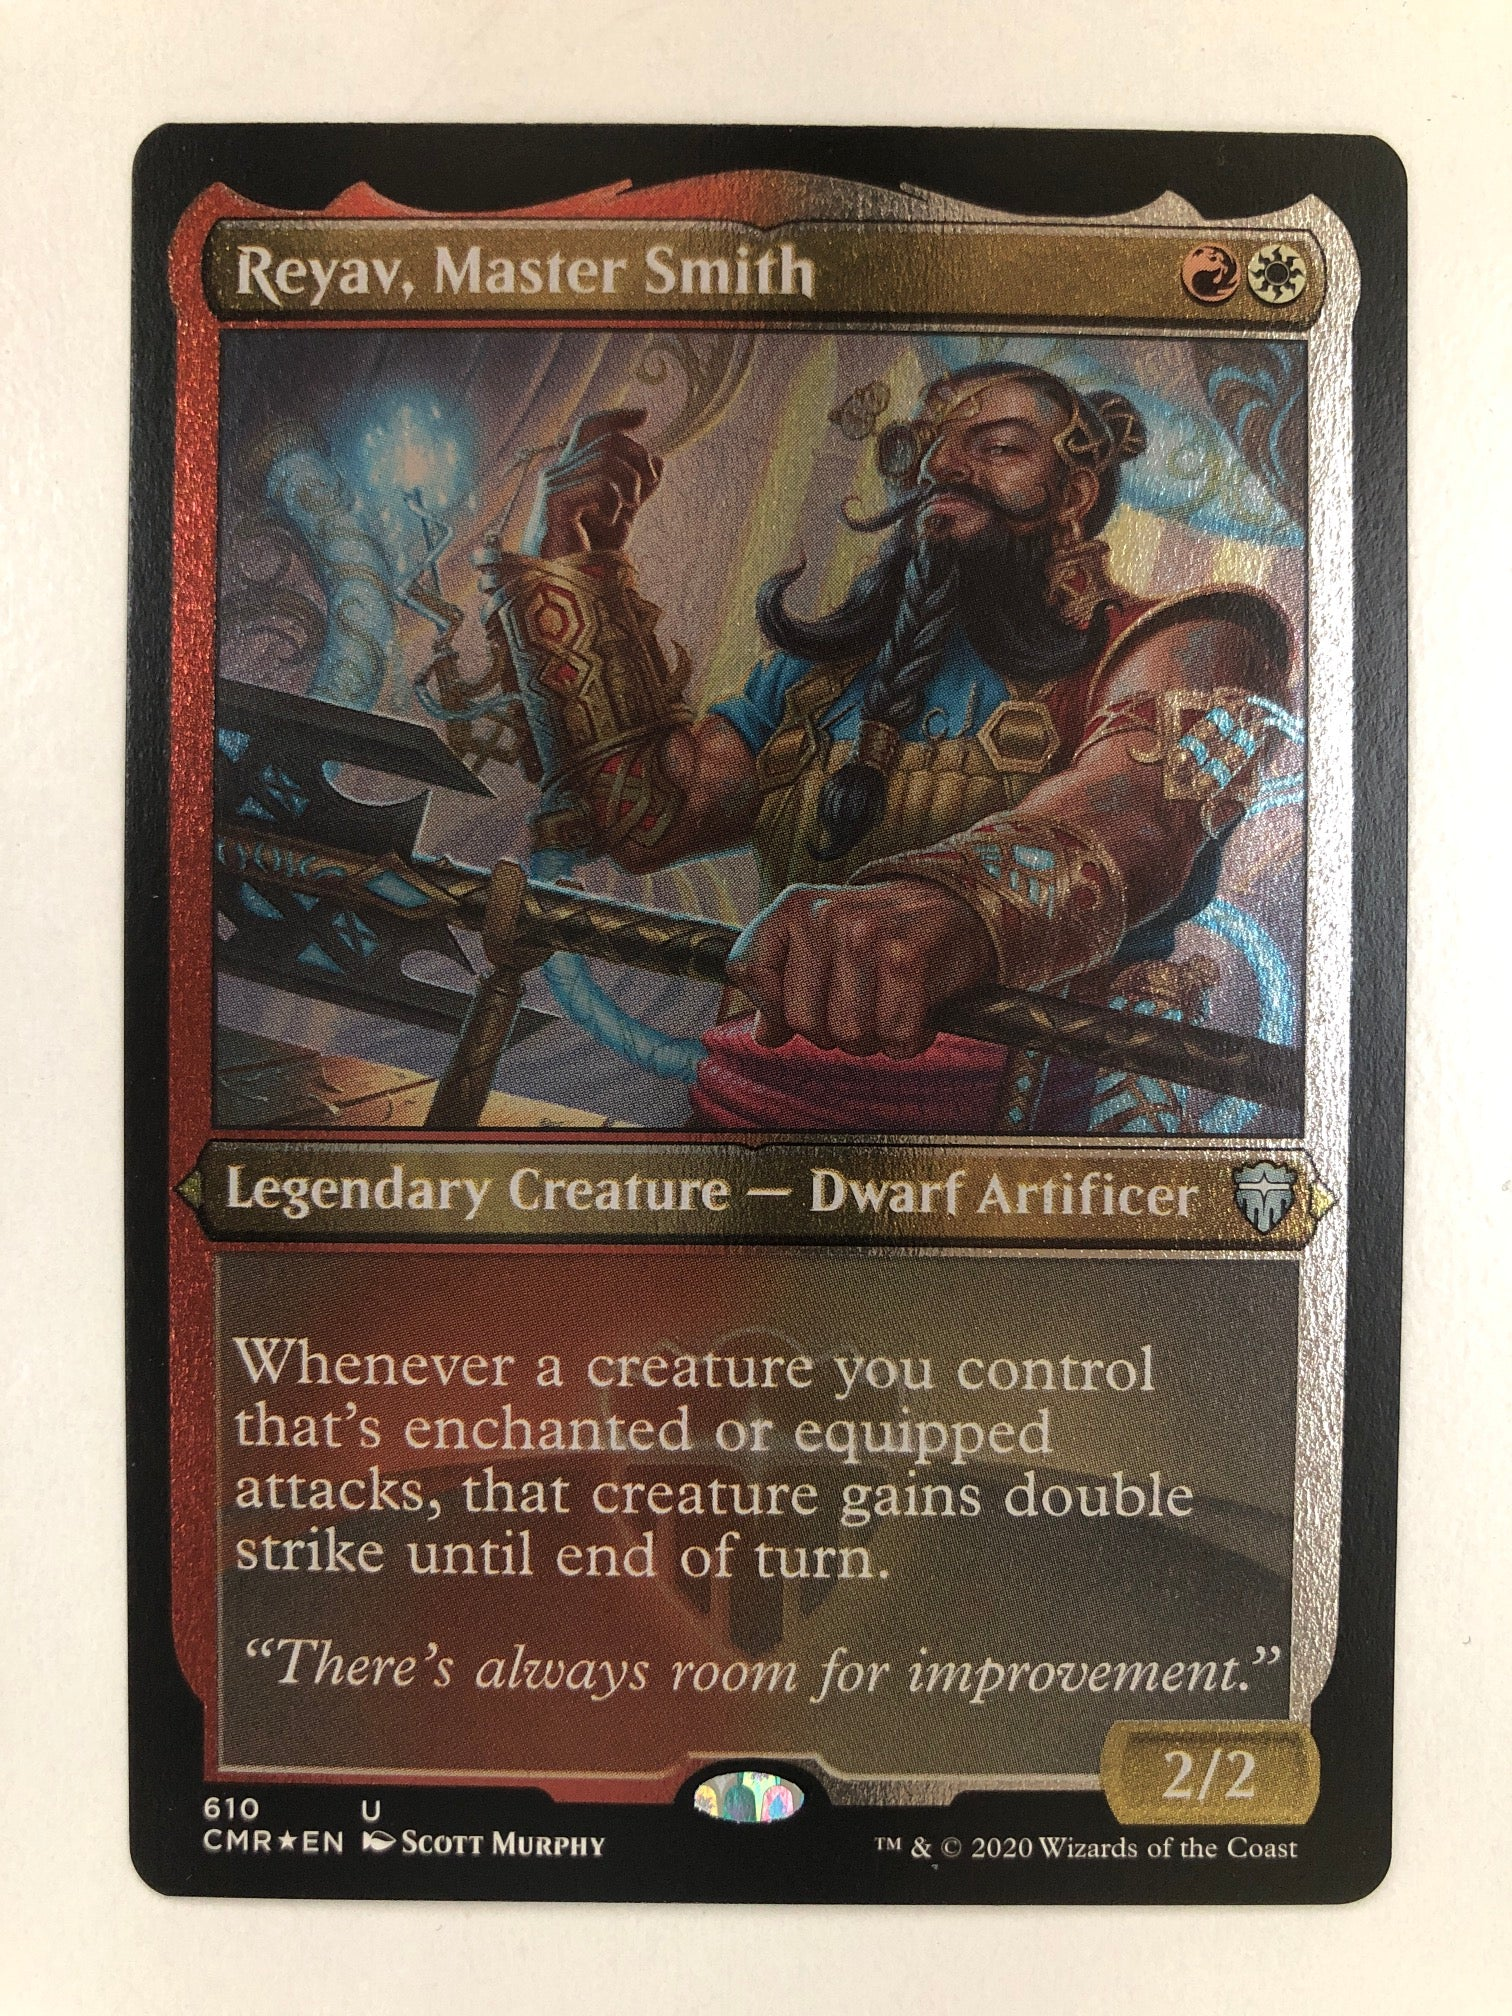 Reyav, Master Smith - CMR 290/361 U (Foil Etched) (M/NM)